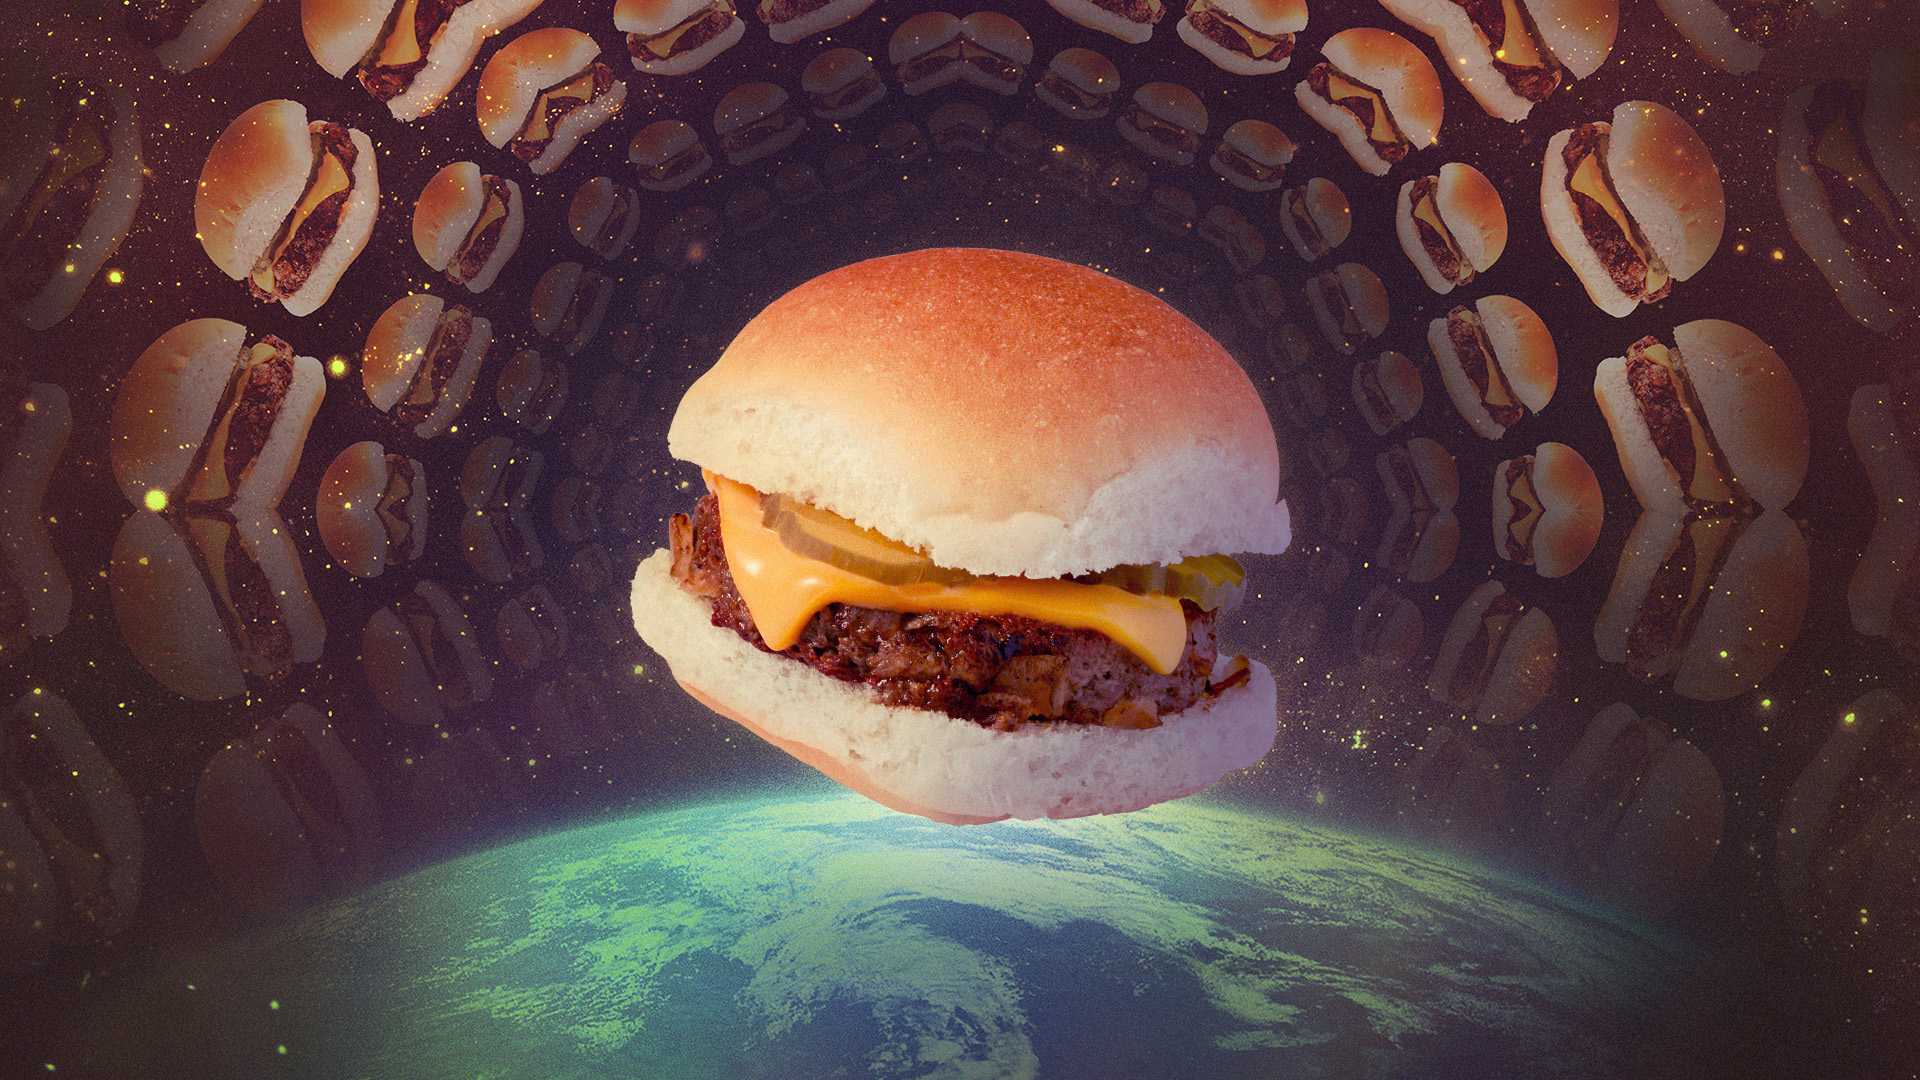 The Impossible™ Slider is meat made from plants and it's available only on Earth and now at White Castle.